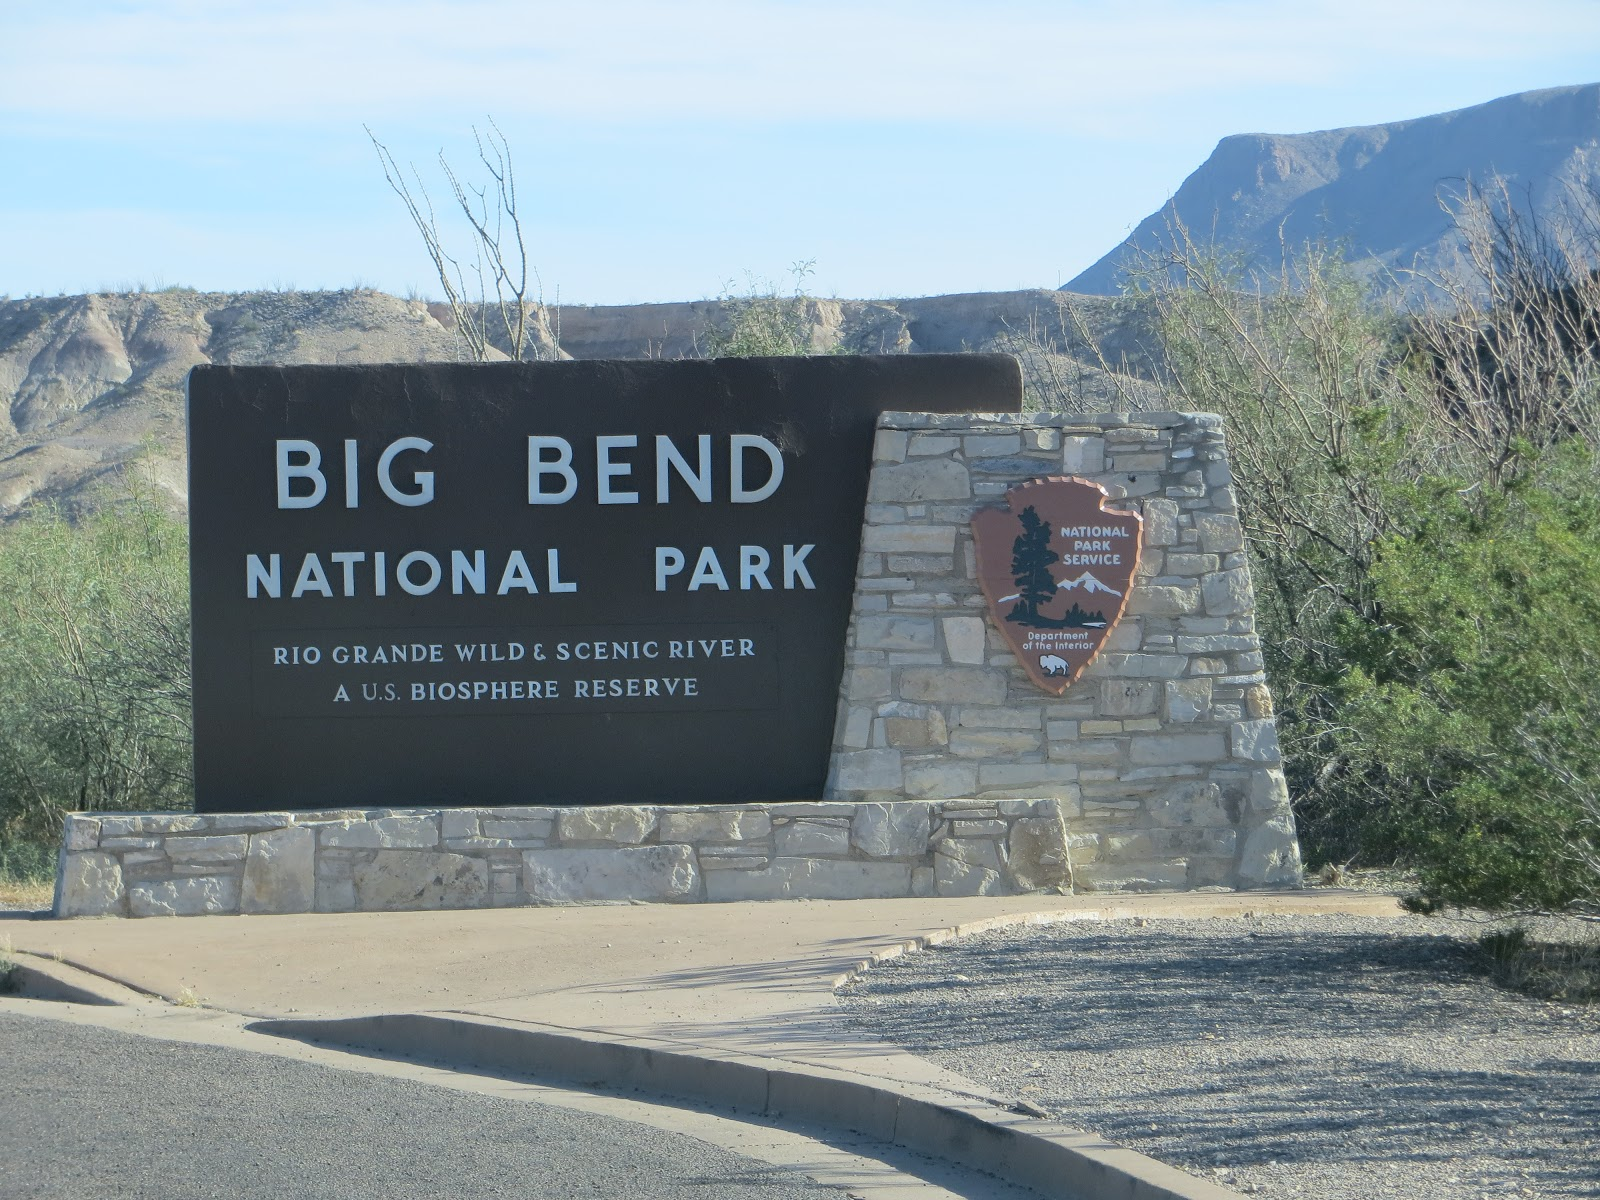 big bend national park jewish personals The grand canyon, the hoover dam, the arizona-sonora desert, horseshoe bend, arizona state university -- these are some of the places that may come to.